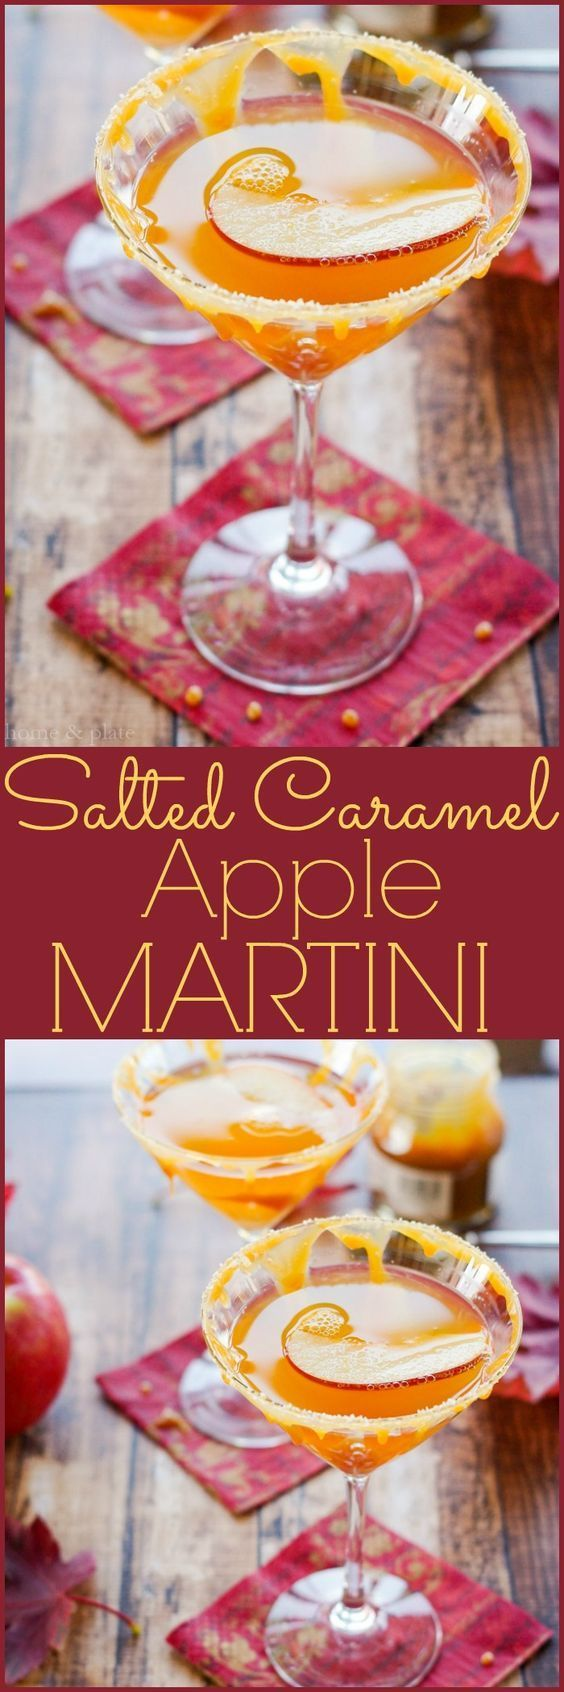 Salted Caramel Apple Martini   www.homeandplate.com   Fresh apple cider and caramel flavored vodka make up this fabulous fall drink.